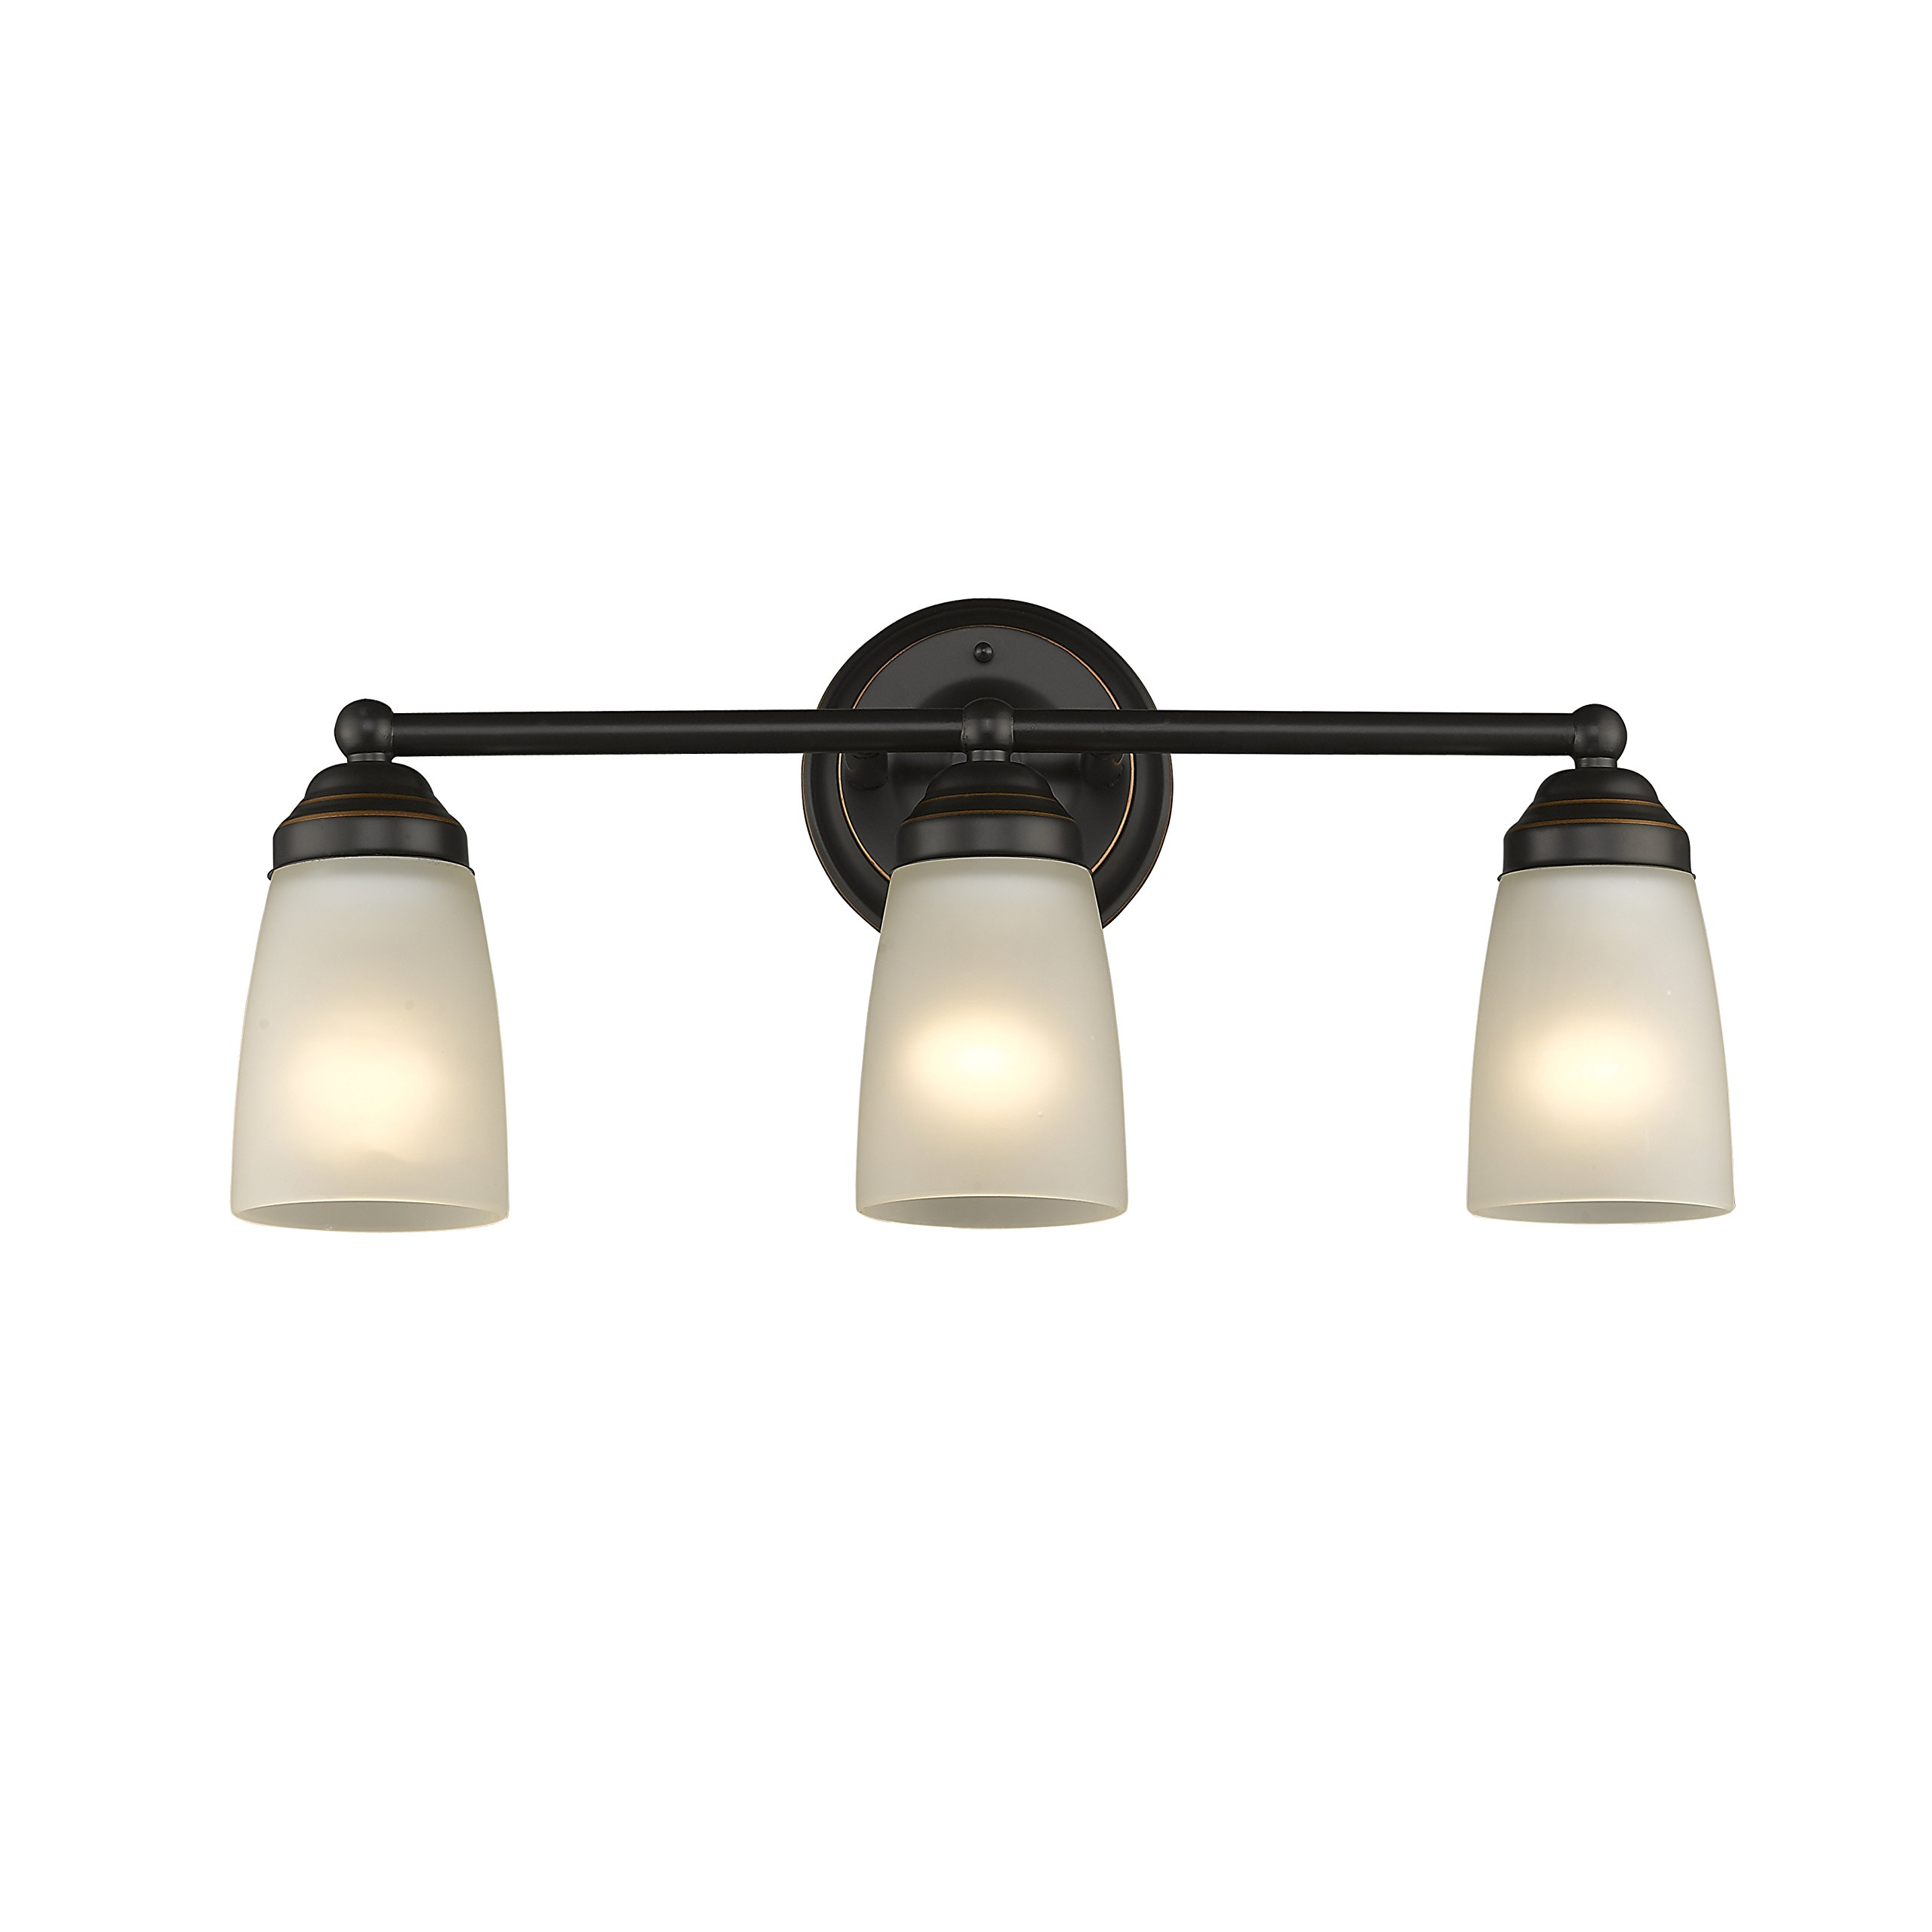 Chloe Lighting CH2Z051BZ21-BL3 21.5'' Wide Hemsworth Transitional 3 Bronze Bath Vanity Wall Fixture White Frosted Glass